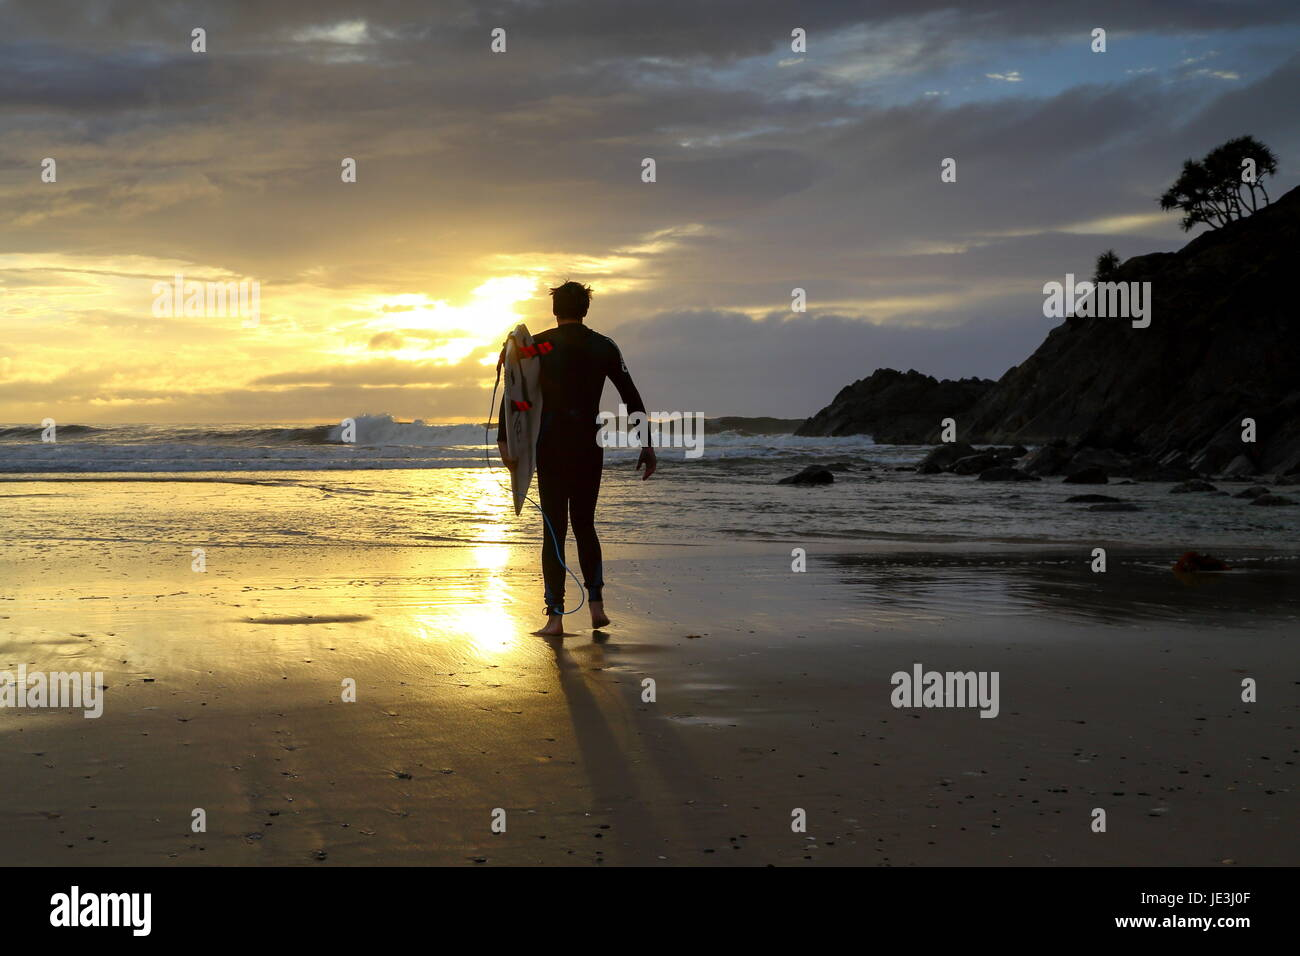 A man in his late twenties walking the beach to go surfing. - Stock Image